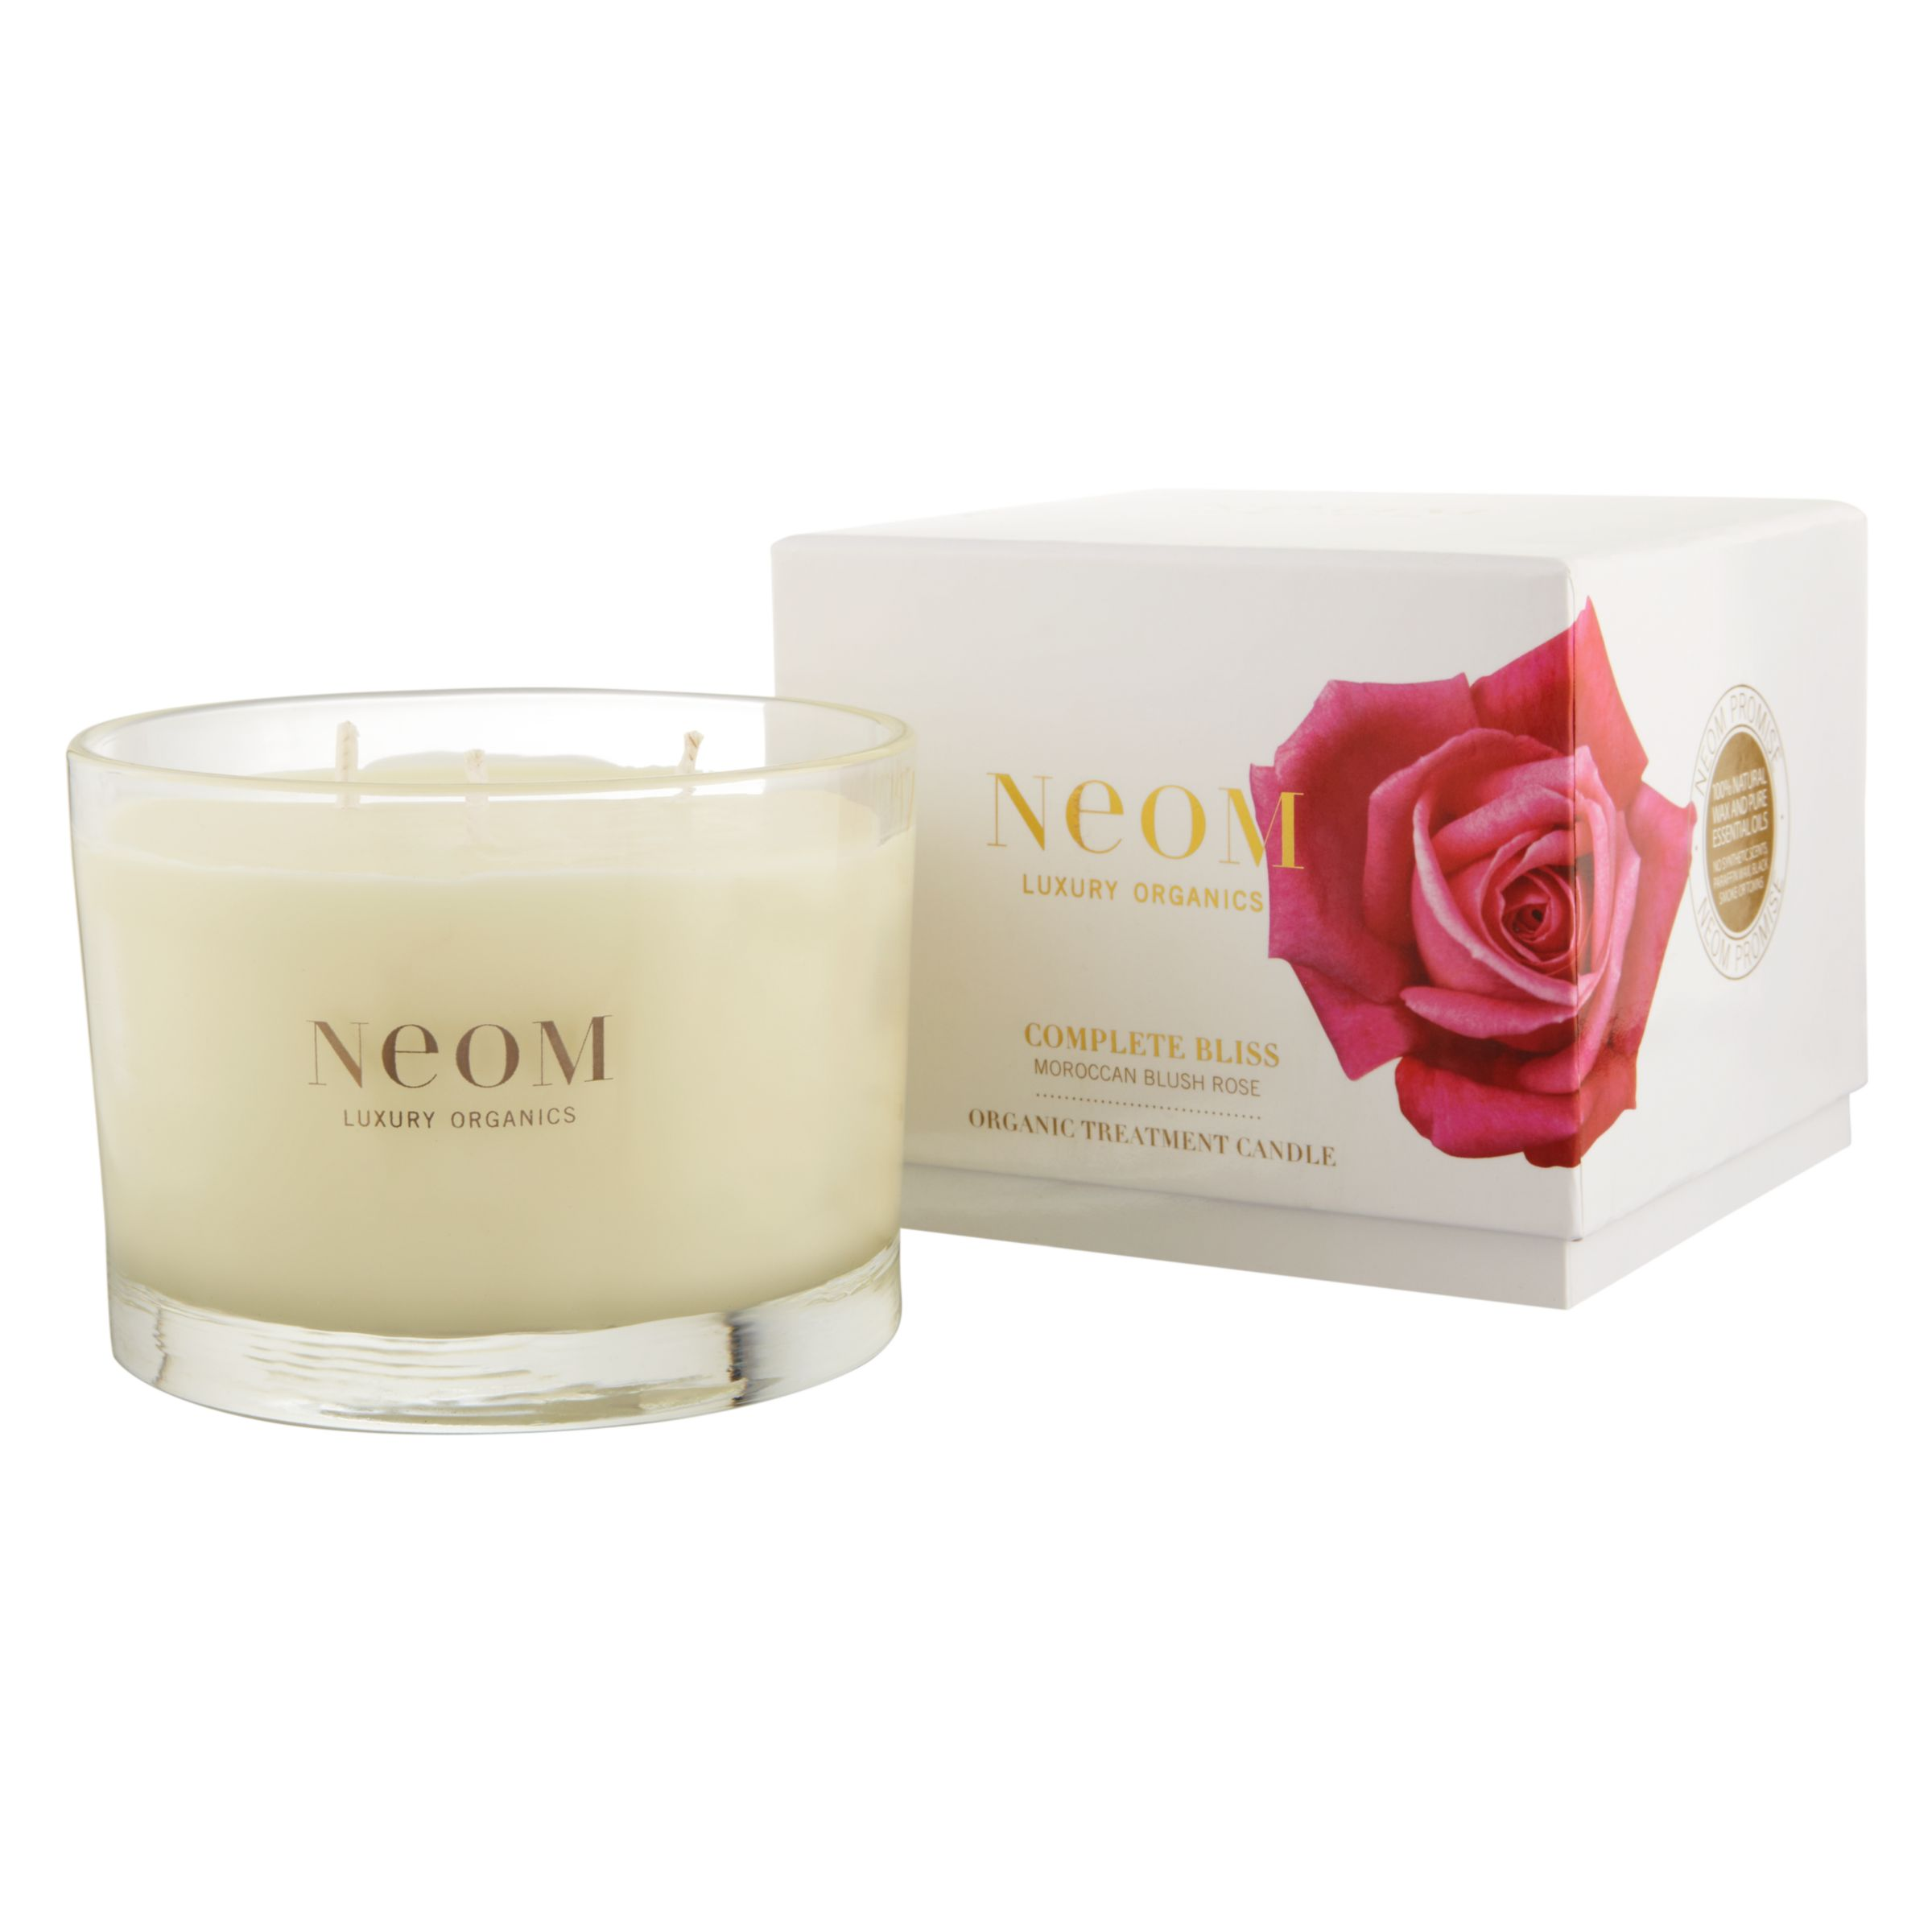 Neom Complete Bliss Moroccan Blush Rose Scented Candle